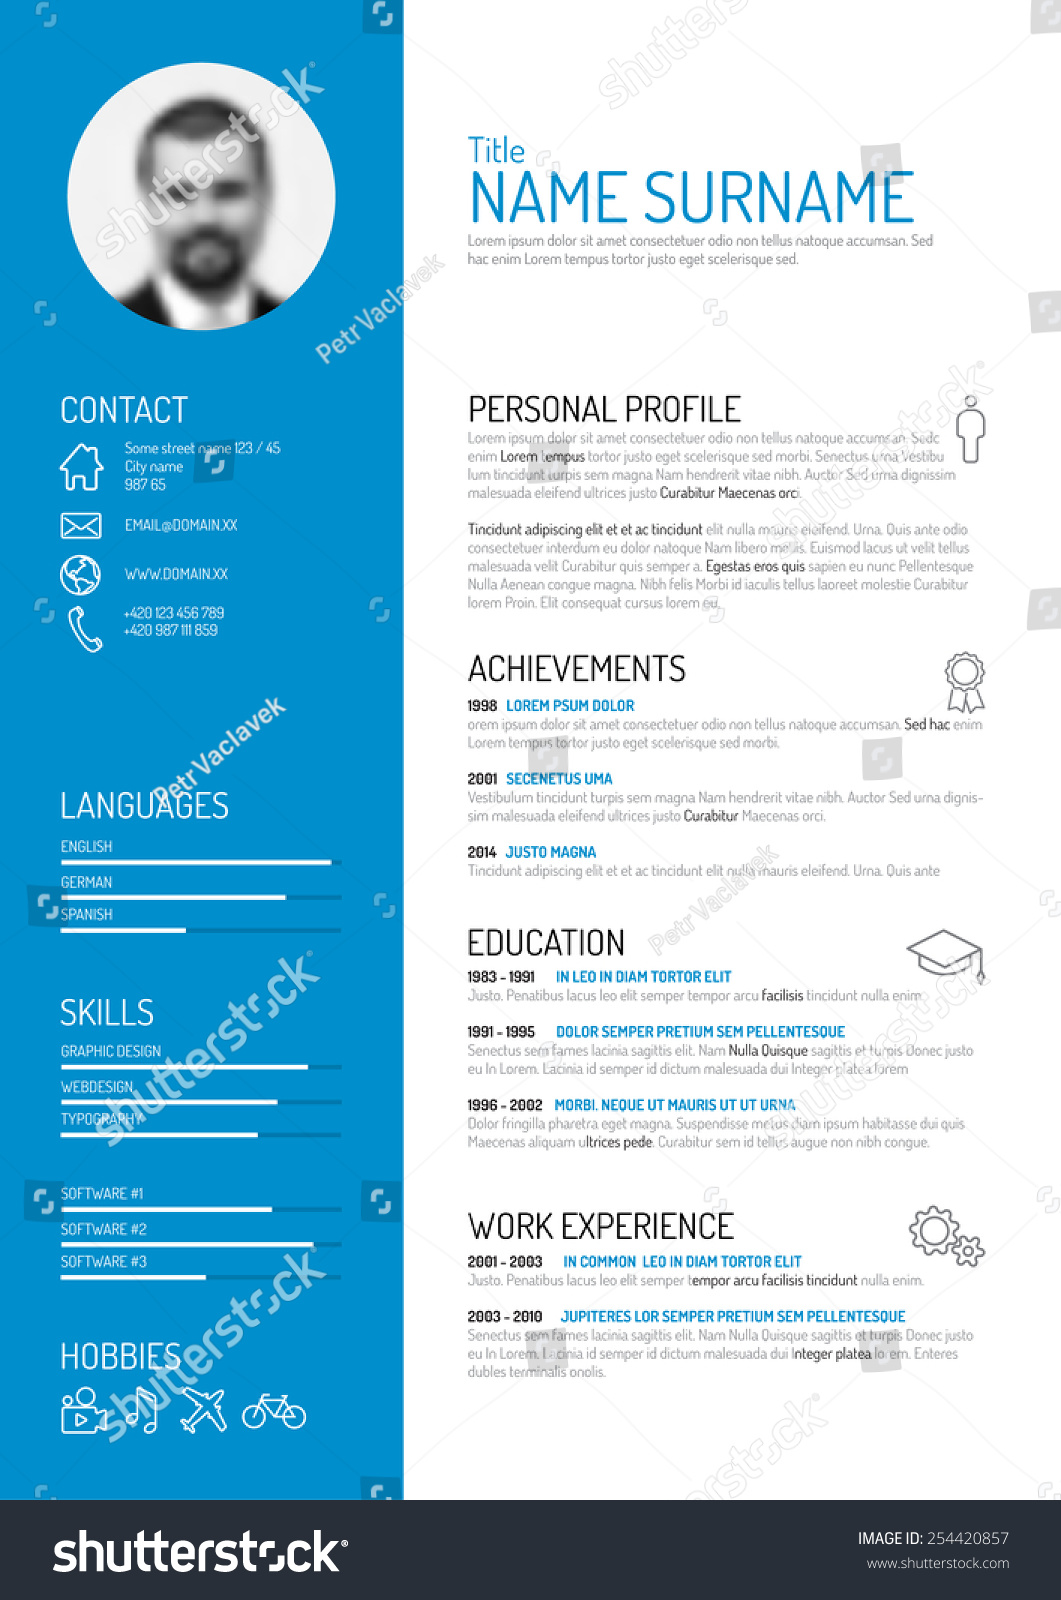 Online Resume Builders The Fastest Resume Builder Vector Minimalist Cv Resume Template Stock Vector